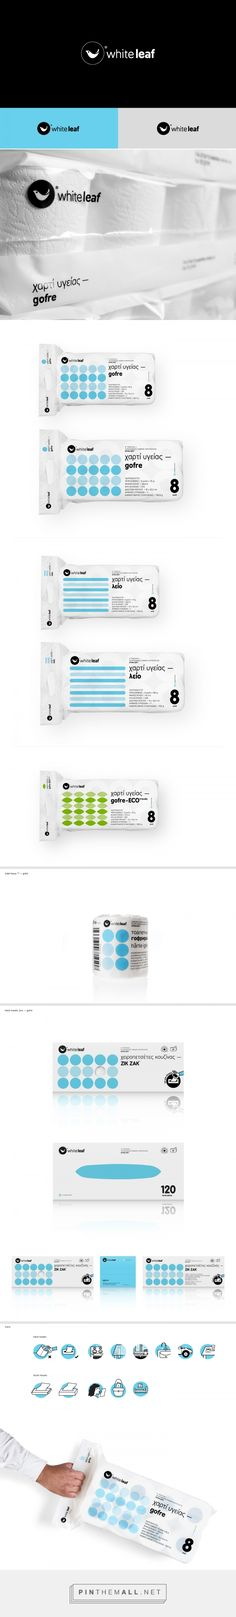 Art Direction, packaging and branding for White leaf — hygiene papers b2b on Behance by Kostas Kaparos Athens, Greece curated by Packaging Diva PD.  Rethinking hygiene papers with some unique designs and  packaging.